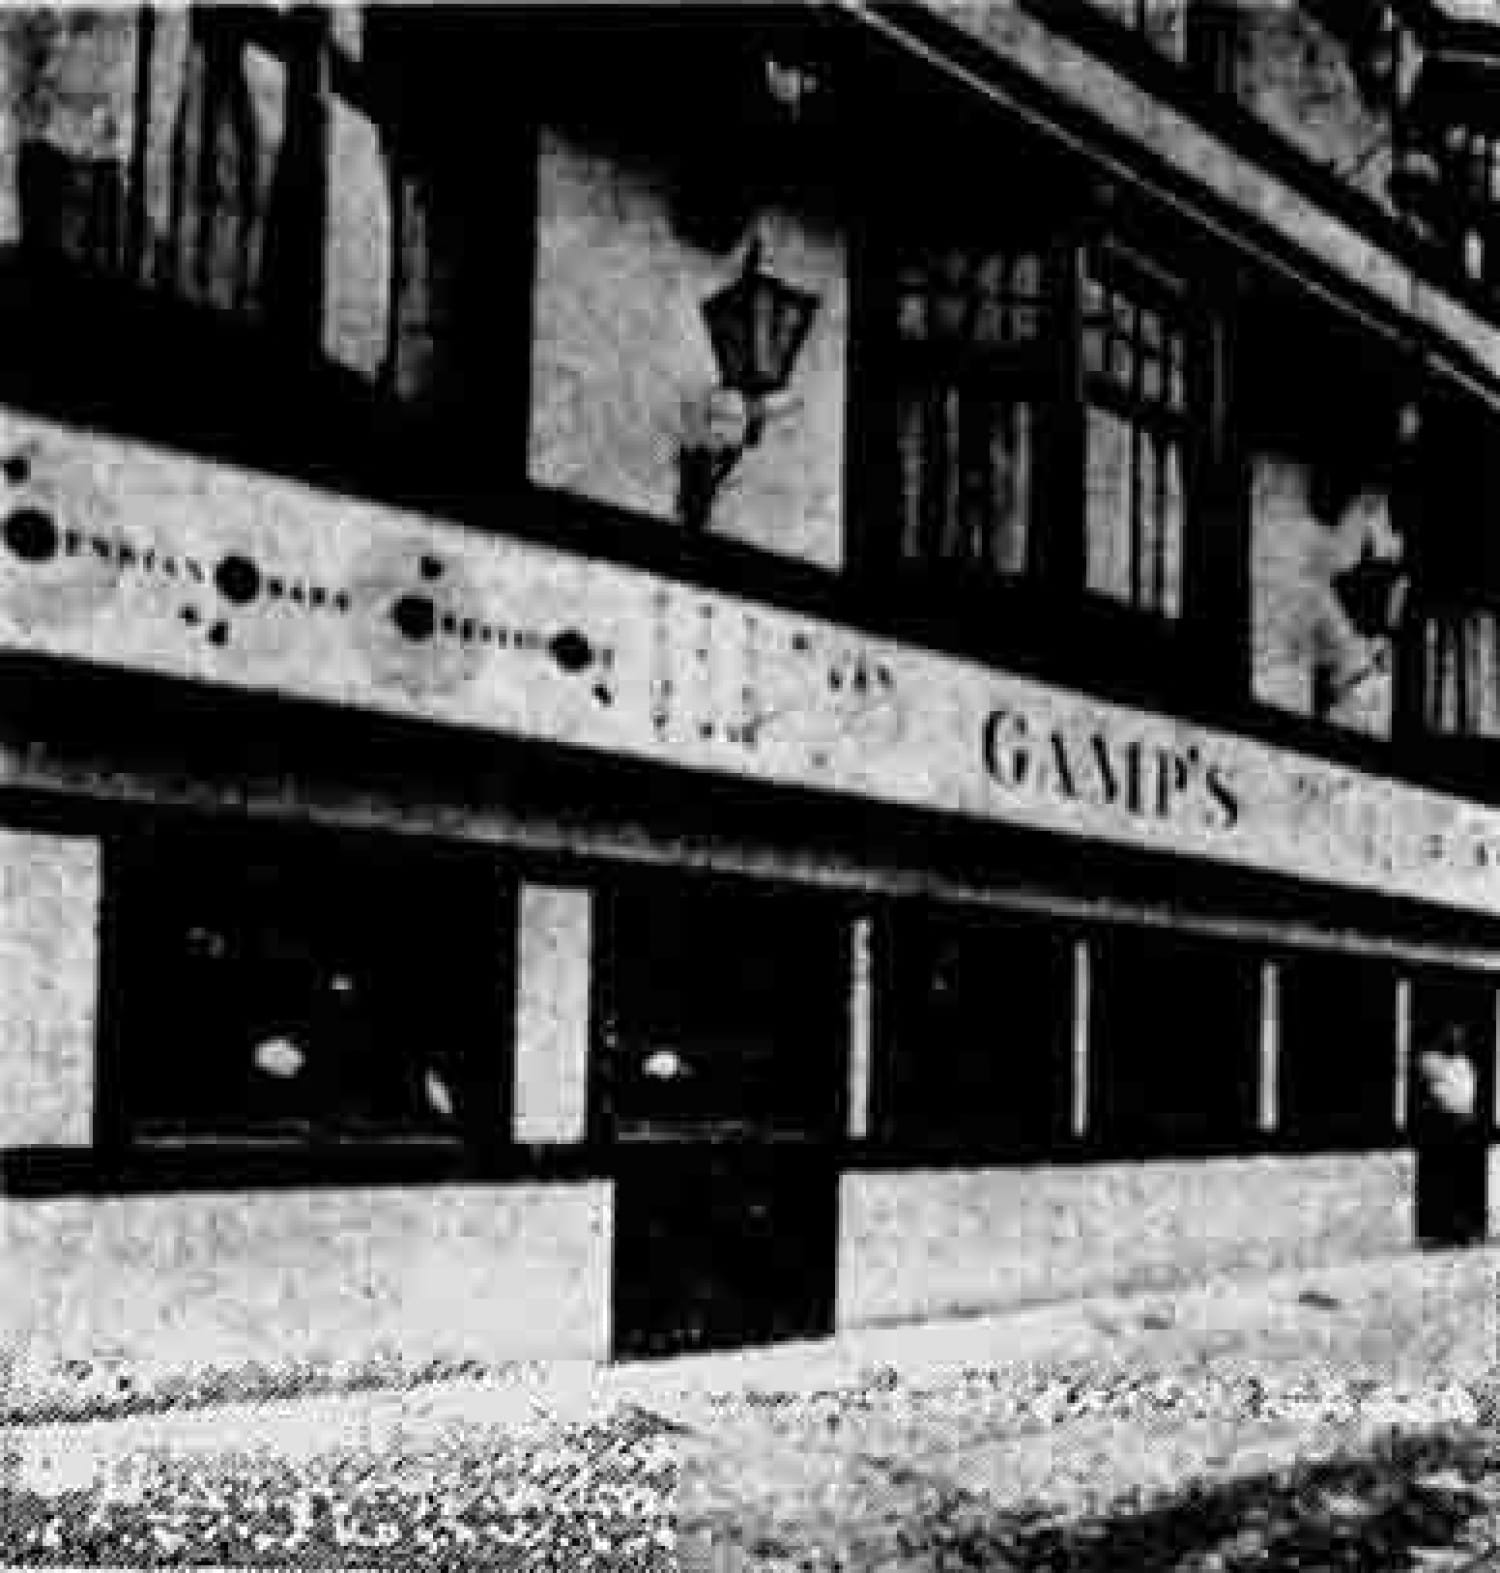 The pub, then called Gamps, when it was rocking a Charles Dickens theme